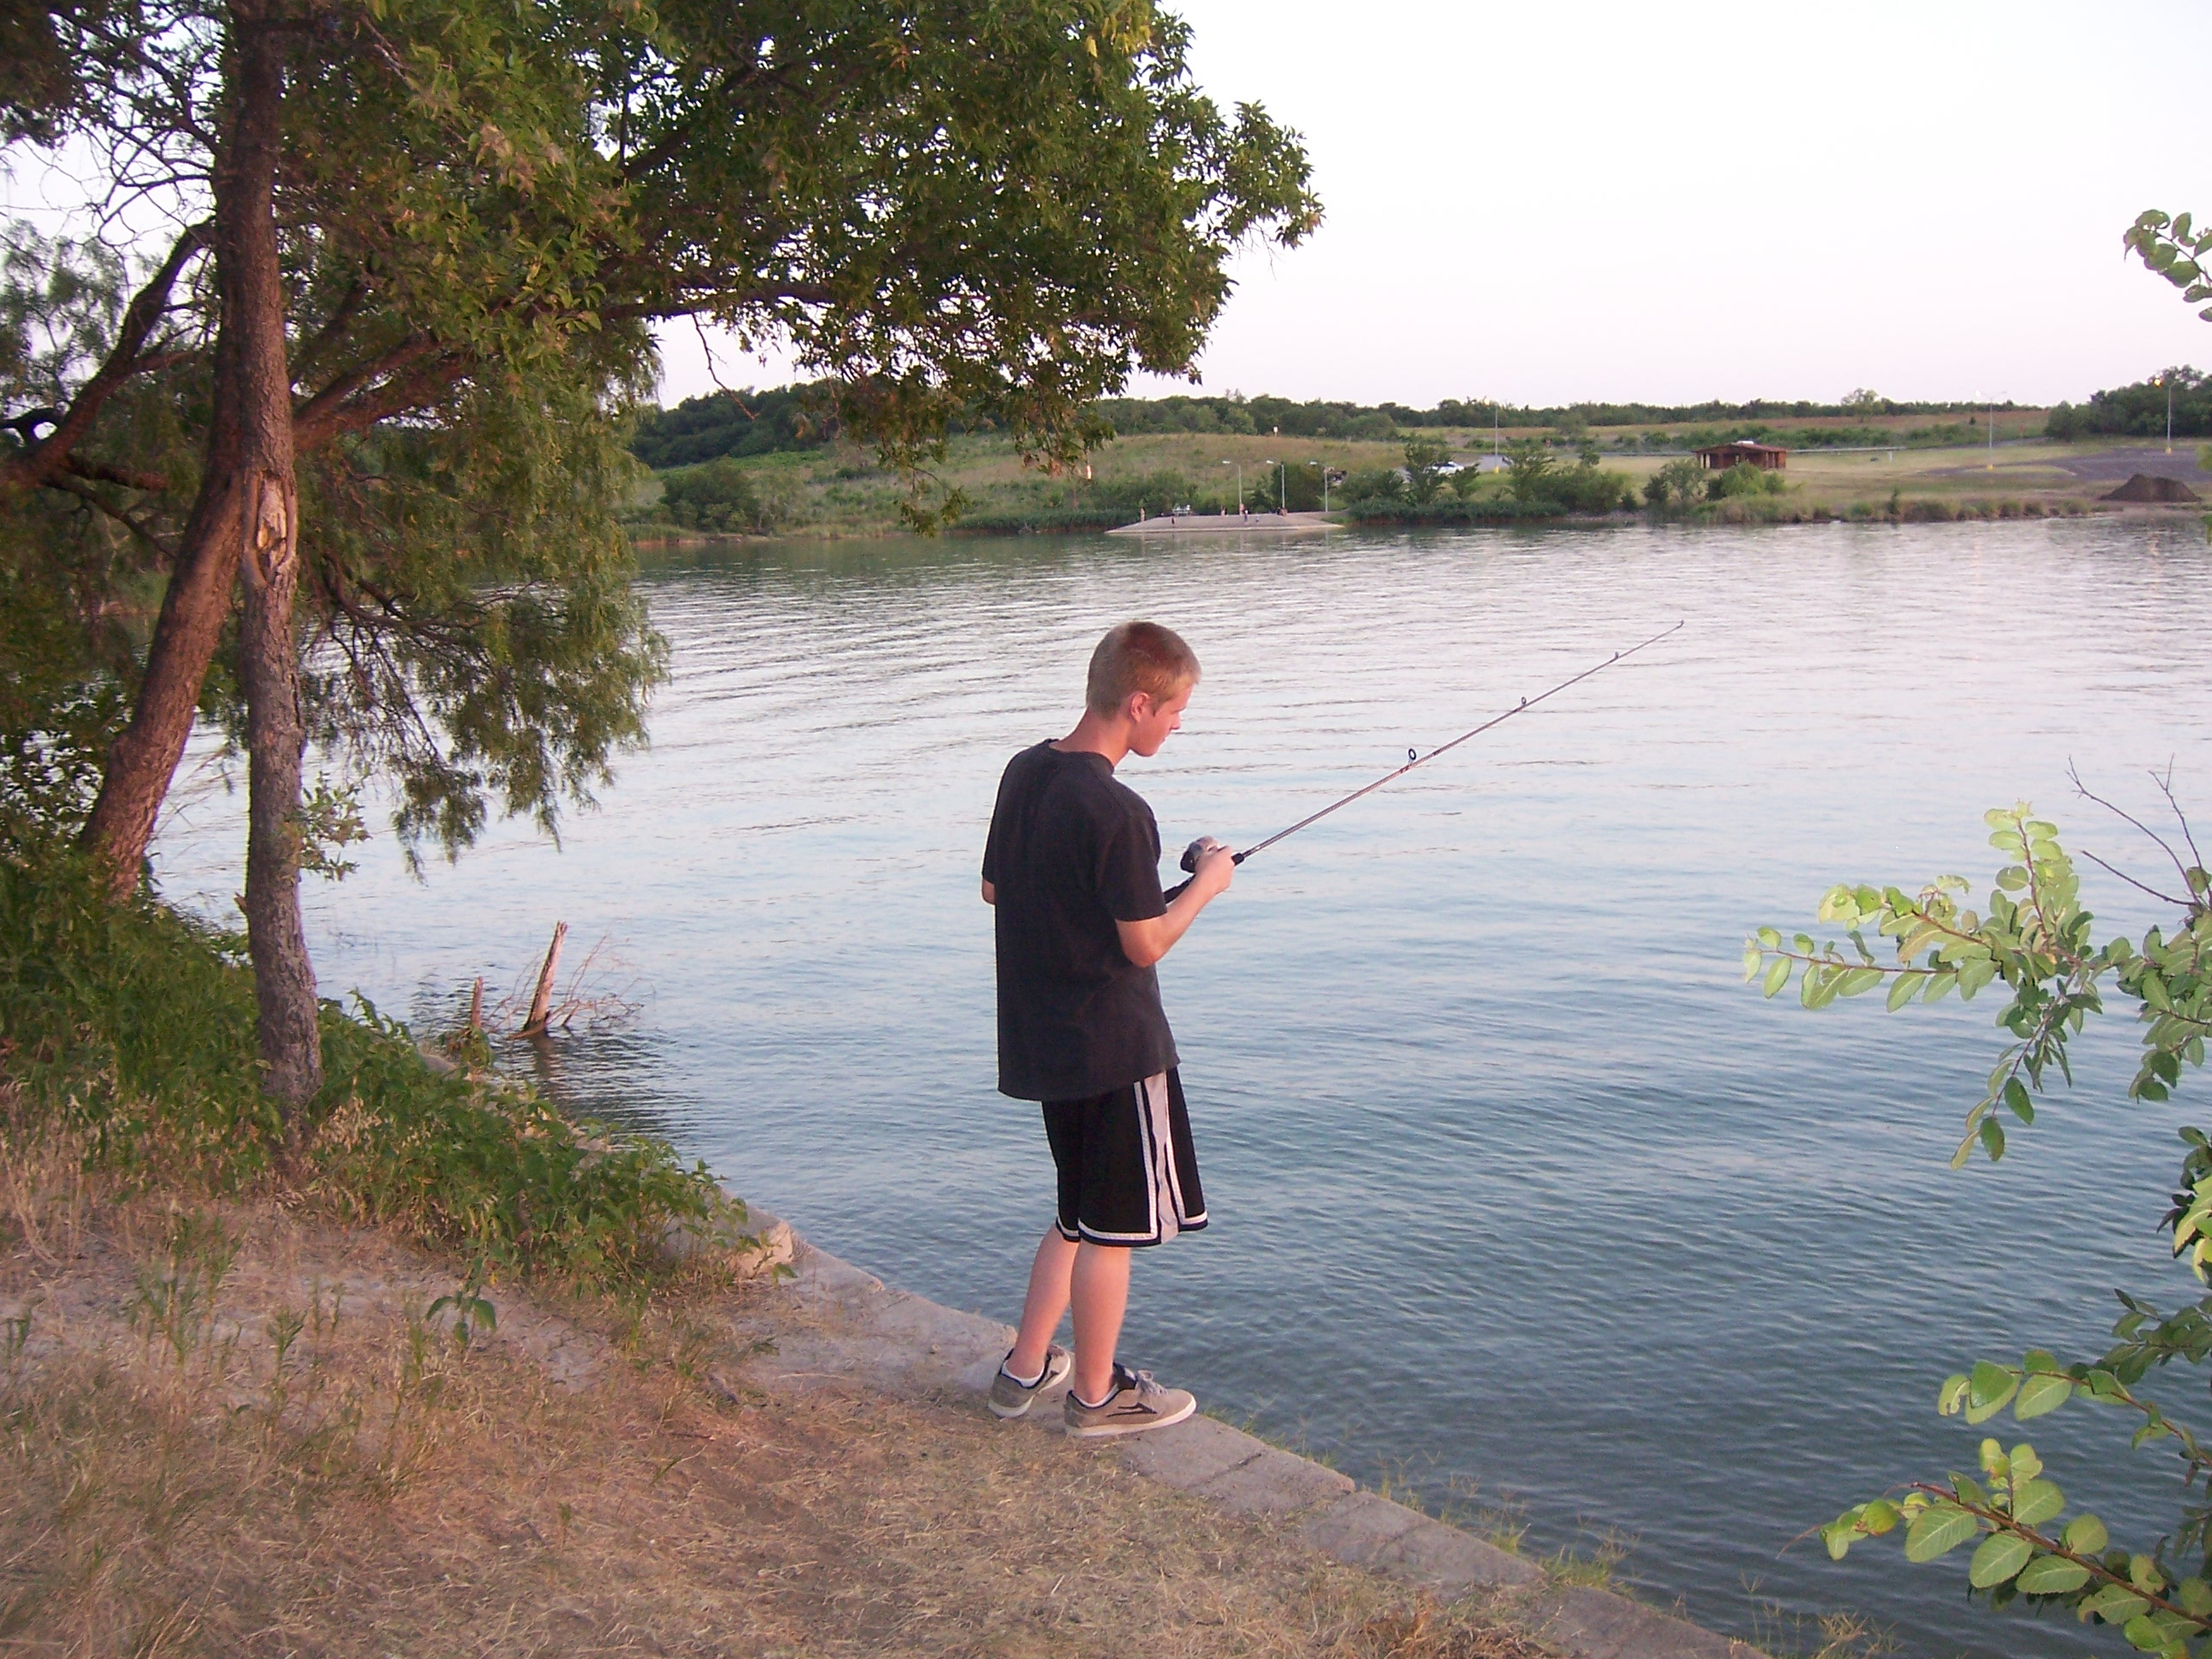 Cedar hill state park jimbo 39 s journeys for How much is a one day fishing license